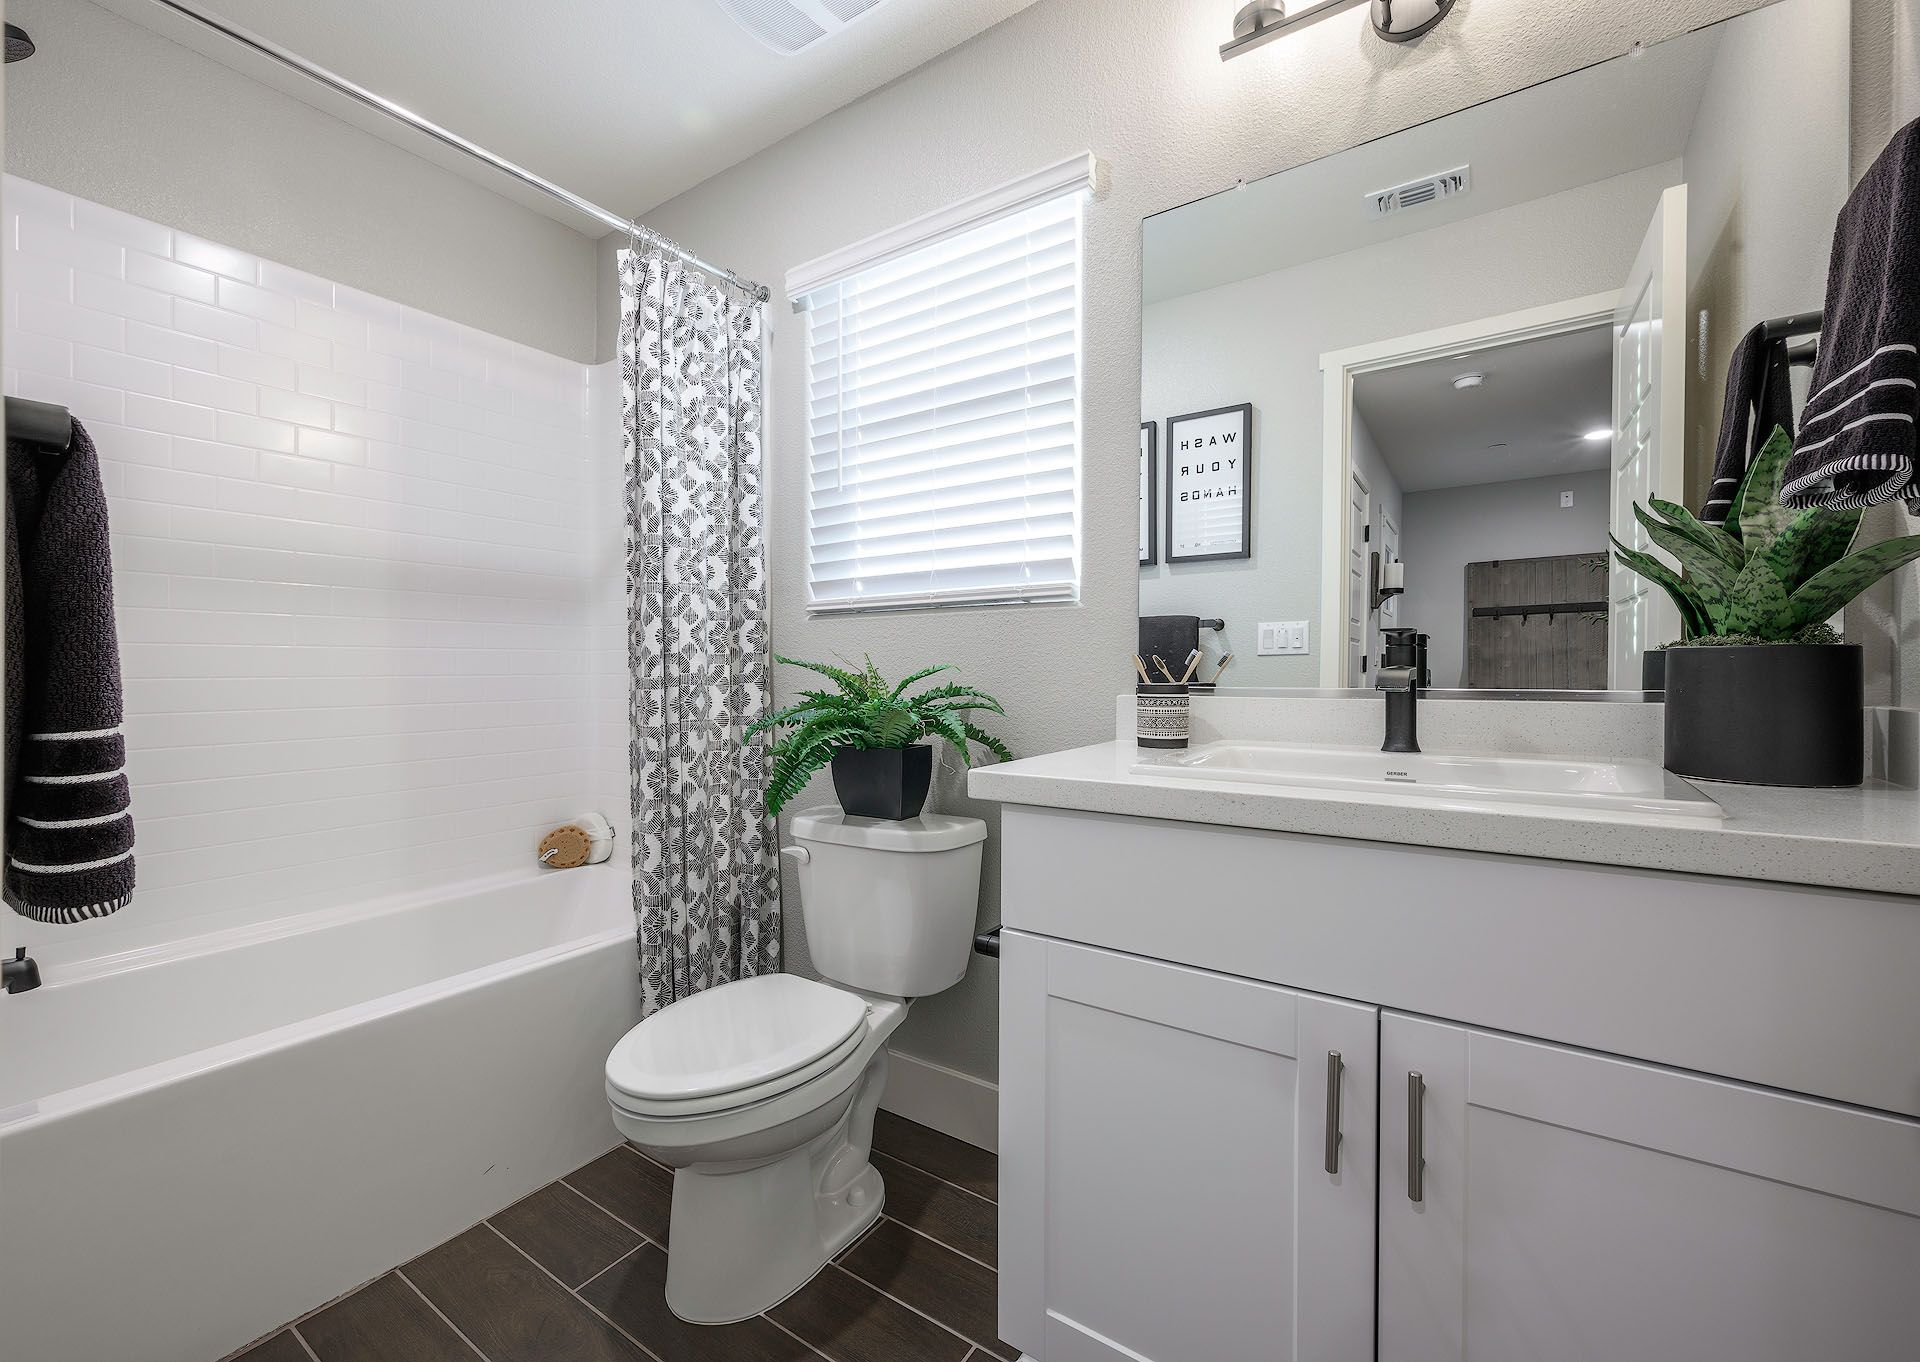 Bathroom featured in the Adams By D.R. Horton in Merced, CA